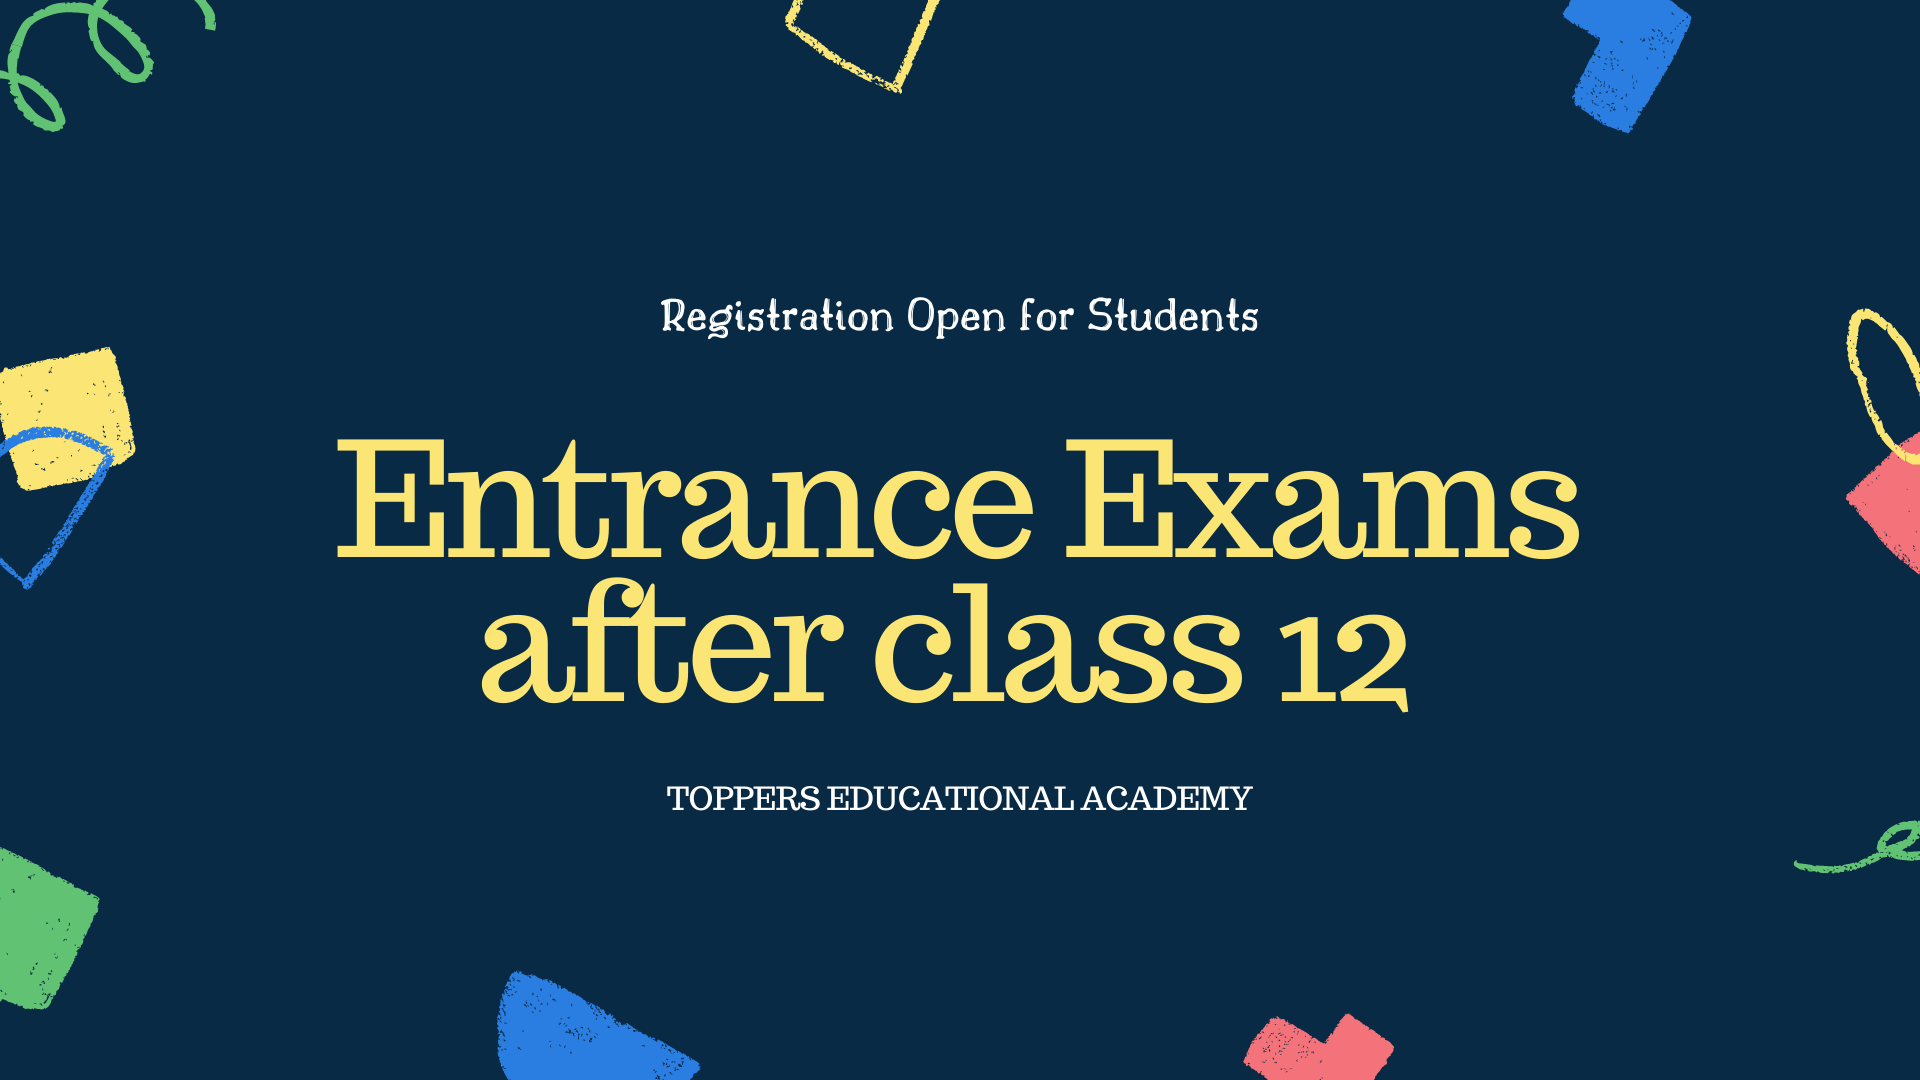 Entrance Exams after class 12 - Registration Open for Students